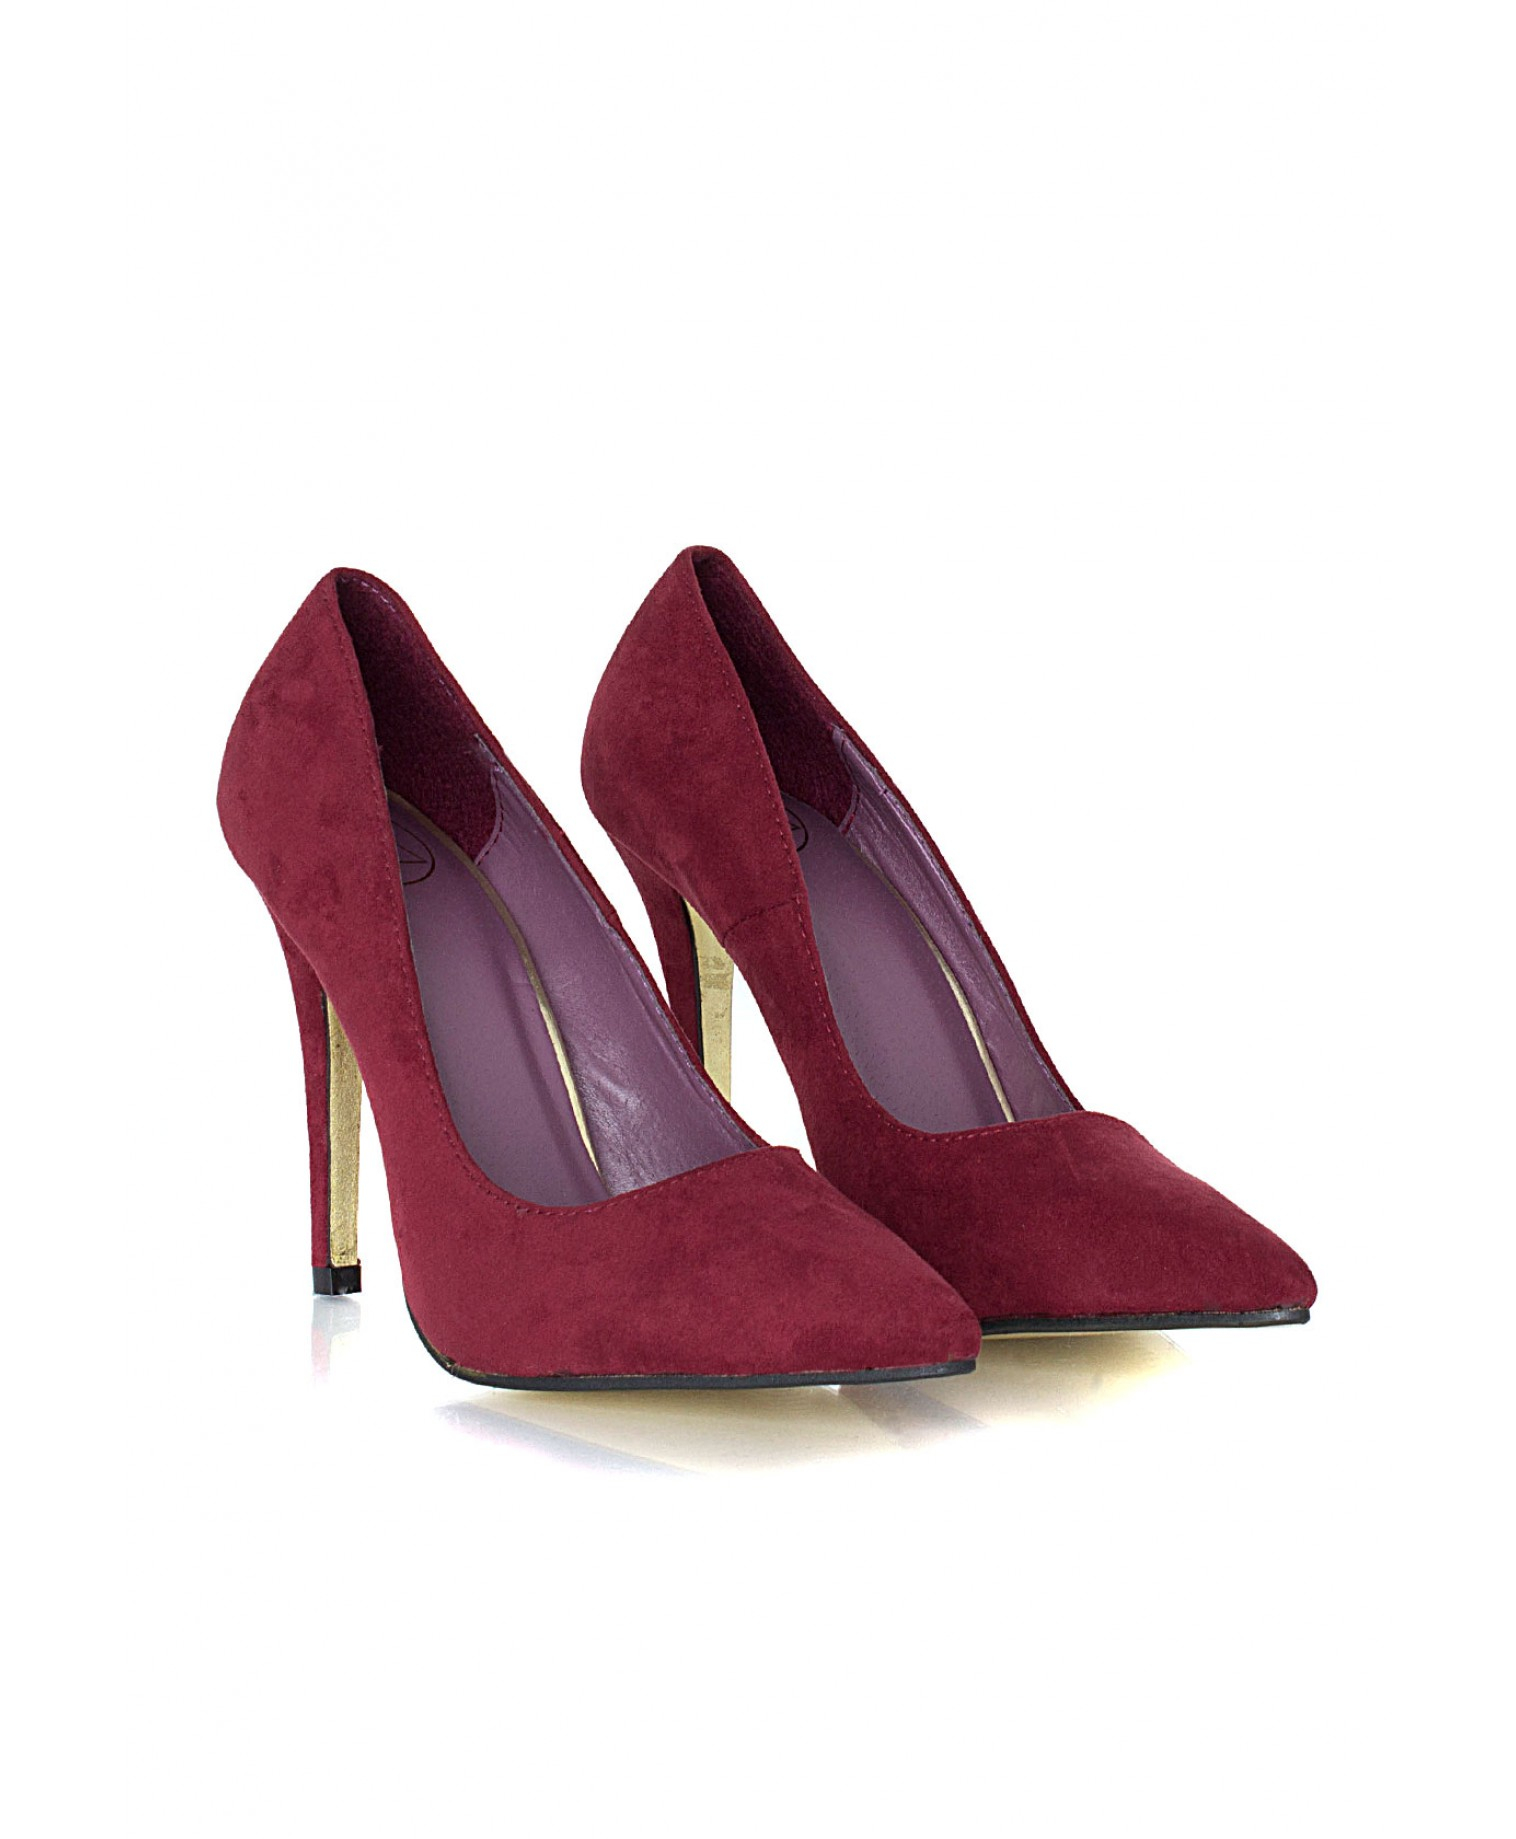 Lyst Missguided Tonita Suede Court Heels In Burgundy In Red